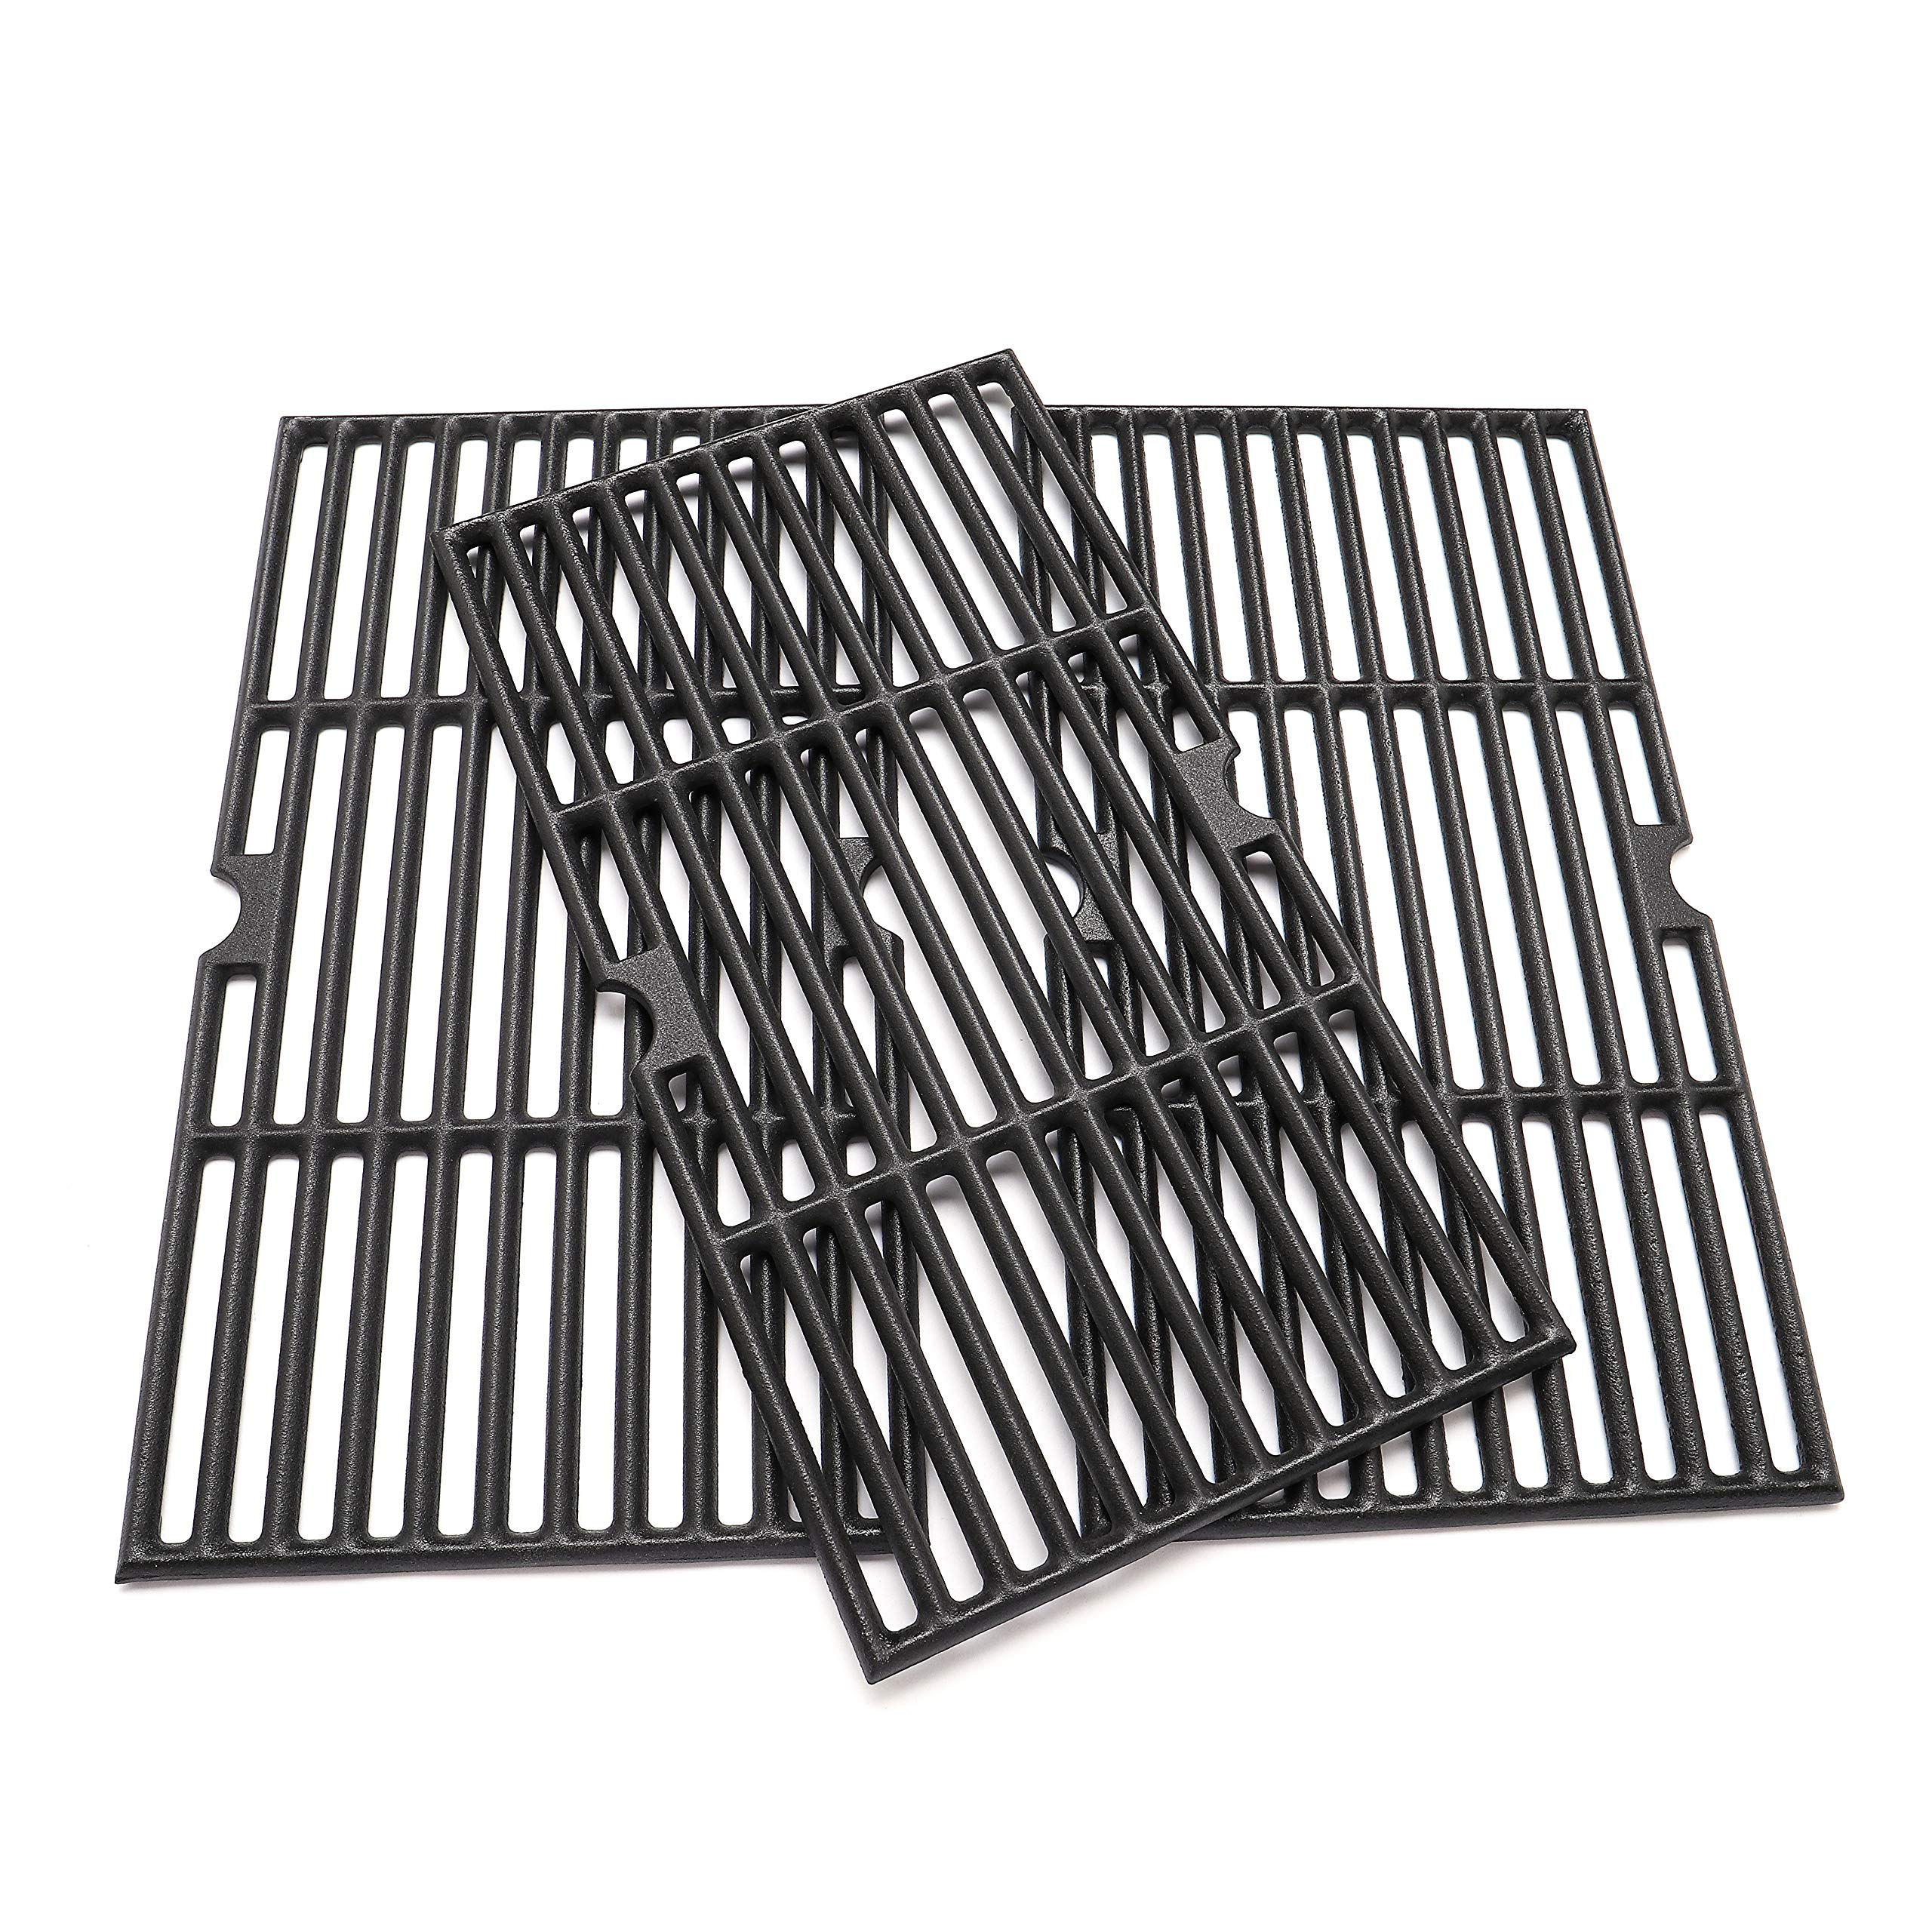 Grates 16 15/16'' for Charbroil 463420507, 463420508, 463420509, 463420510, 463420511, 463436213, 463436214, 463436413, 463440109, 463441312, 463441412, 463441512, 463441513, 463441514, 466420909 by Grill Valueparts